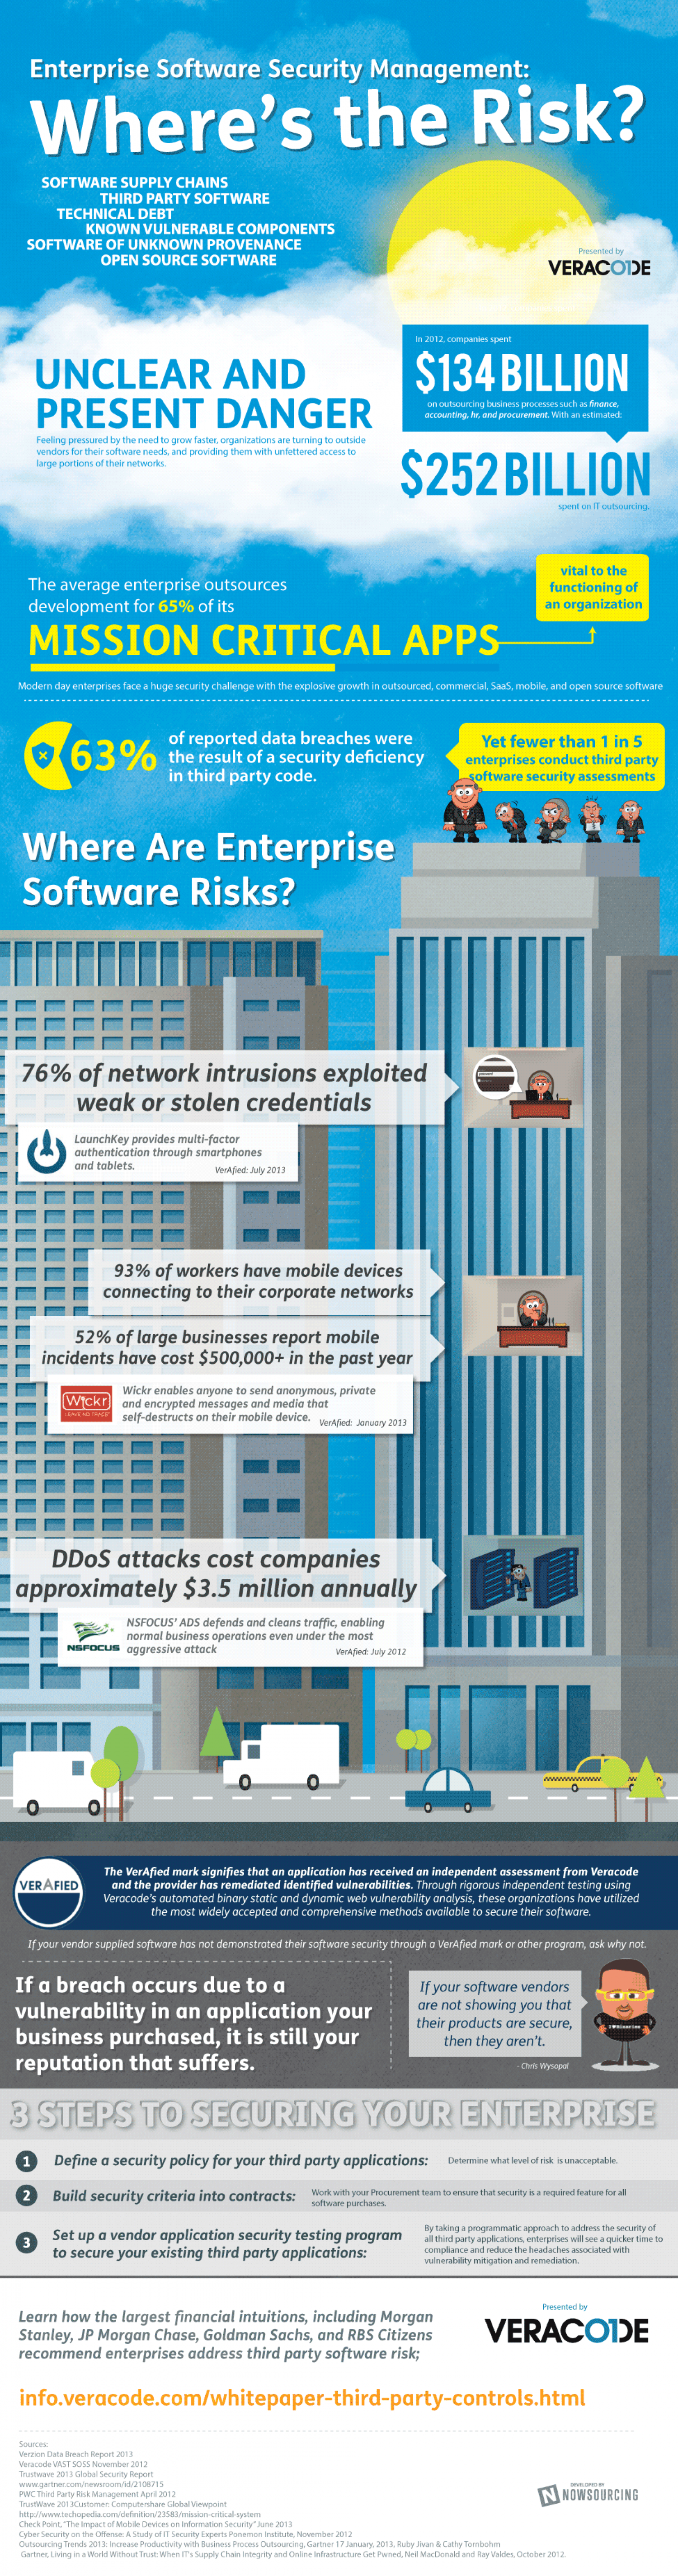 Enterprise Software Security Management: Where's the Risk? Infographic